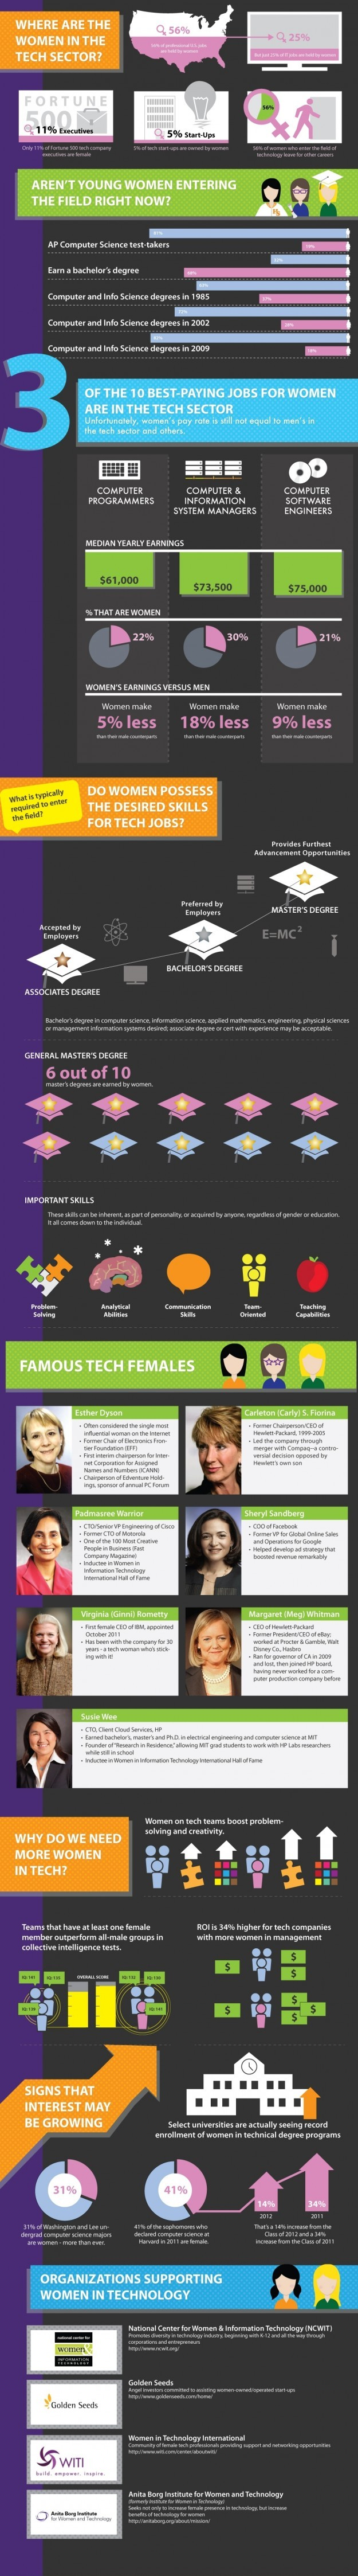 women-in-technology-infographic